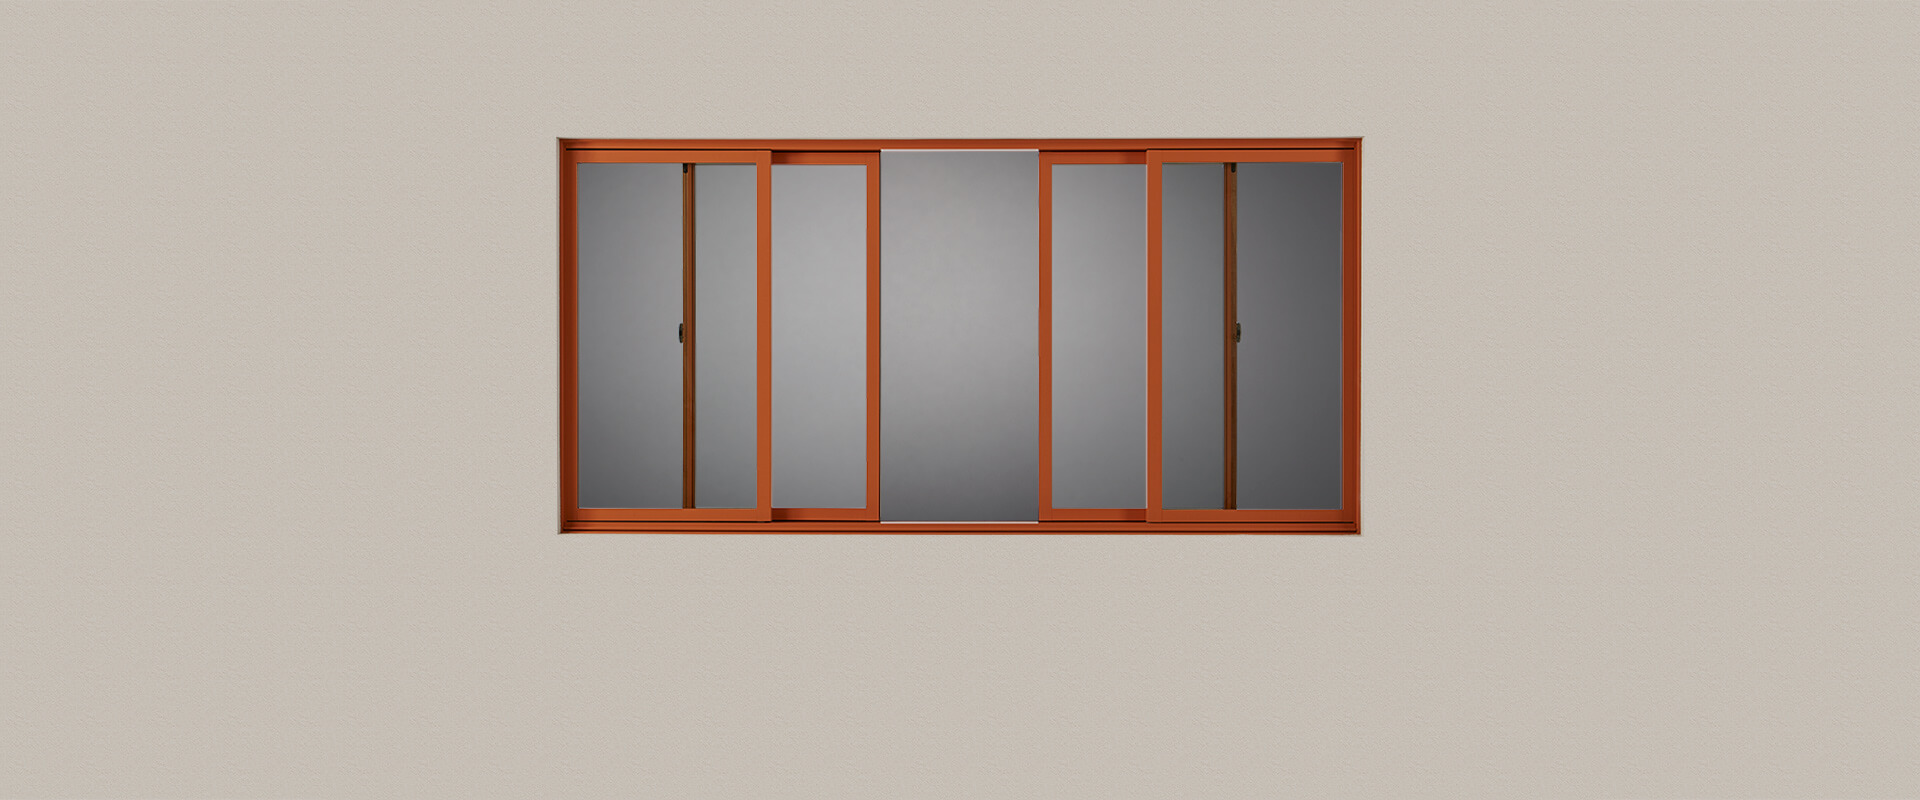 VistaLuxe Complementary quad sliding window with Pumpkin Spice exterior finish.